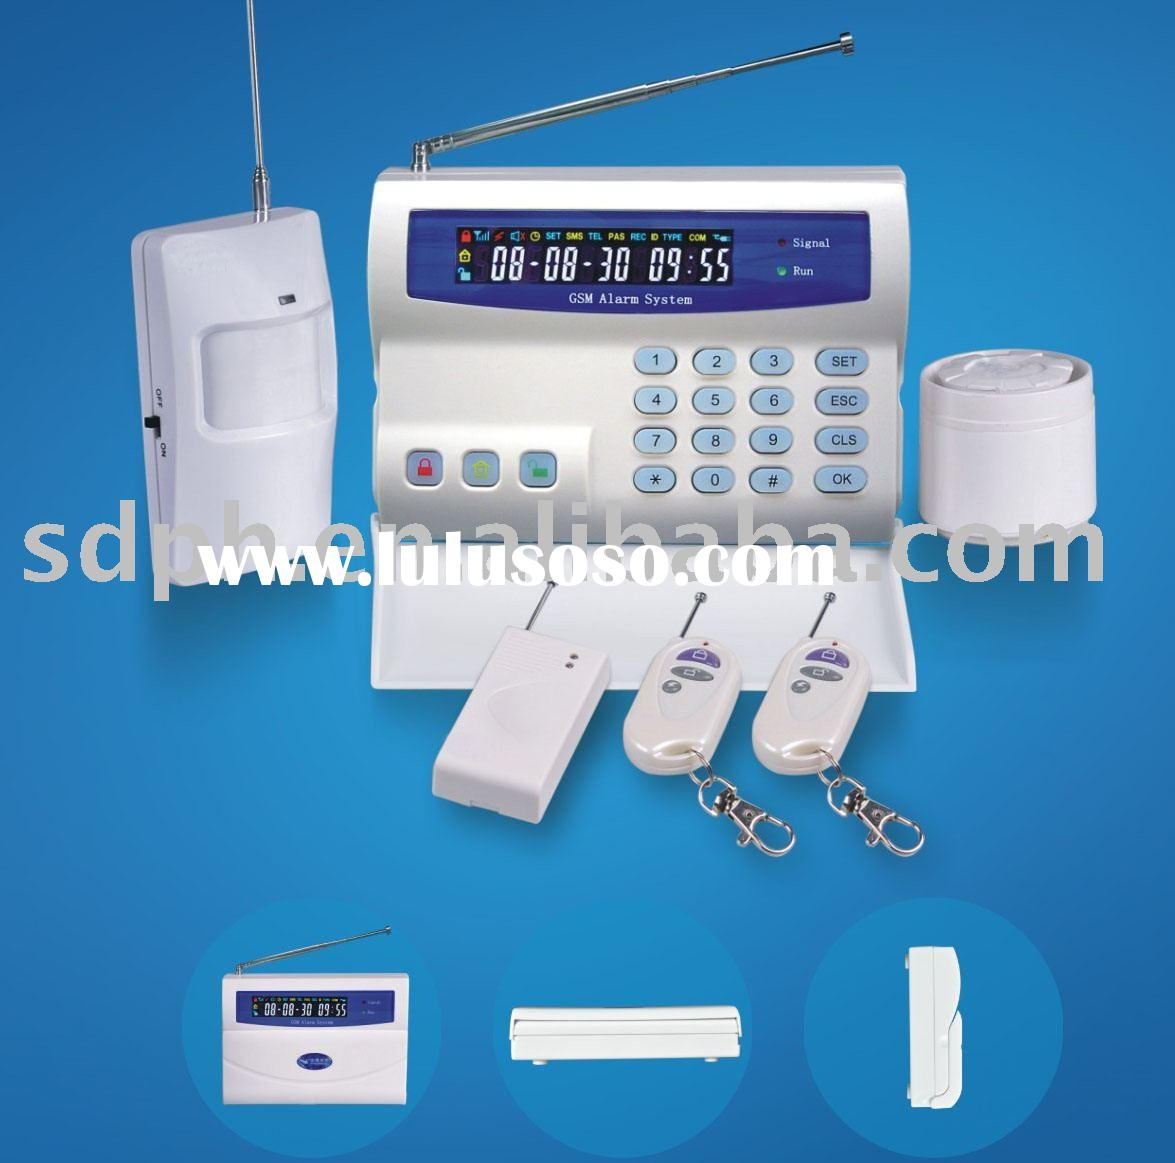 Wireless Security Alarm Systems